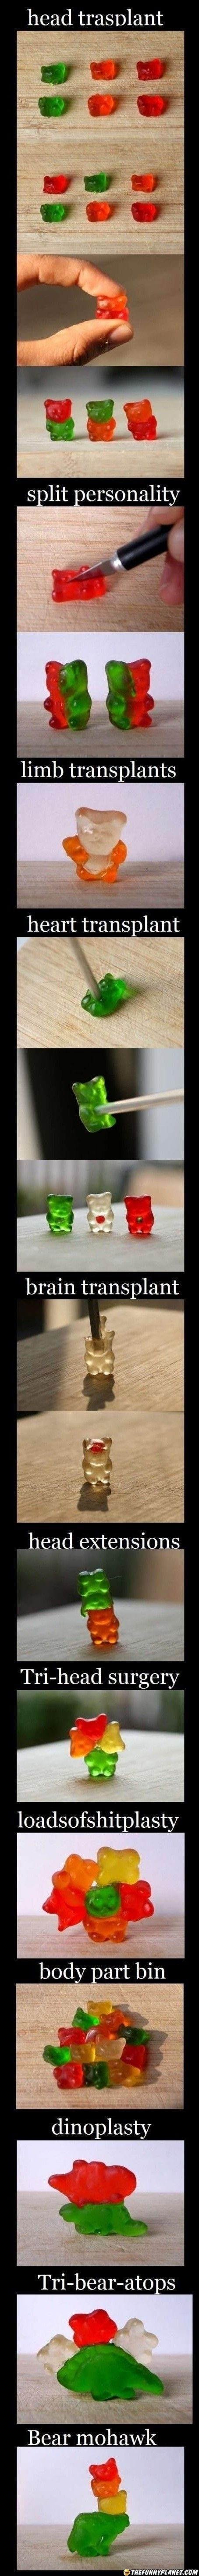 When I'm Bored, I Play With Gummy Bears